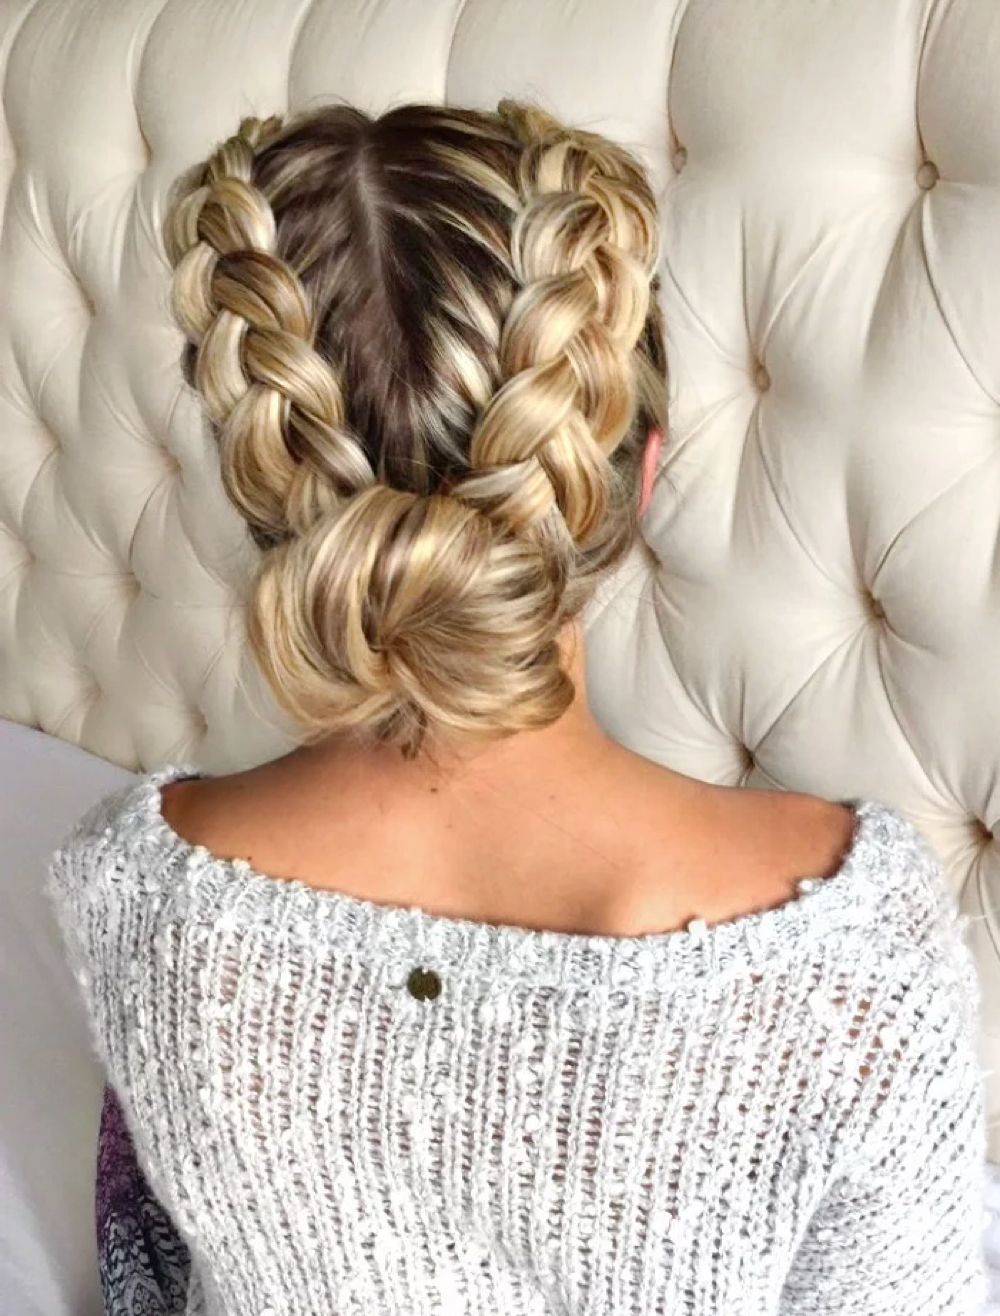 29 Gorgeous Braided Updo Ideas For 2019 In Recent Extra Thick Braided Bun Hairstyles (View 3 of 20)